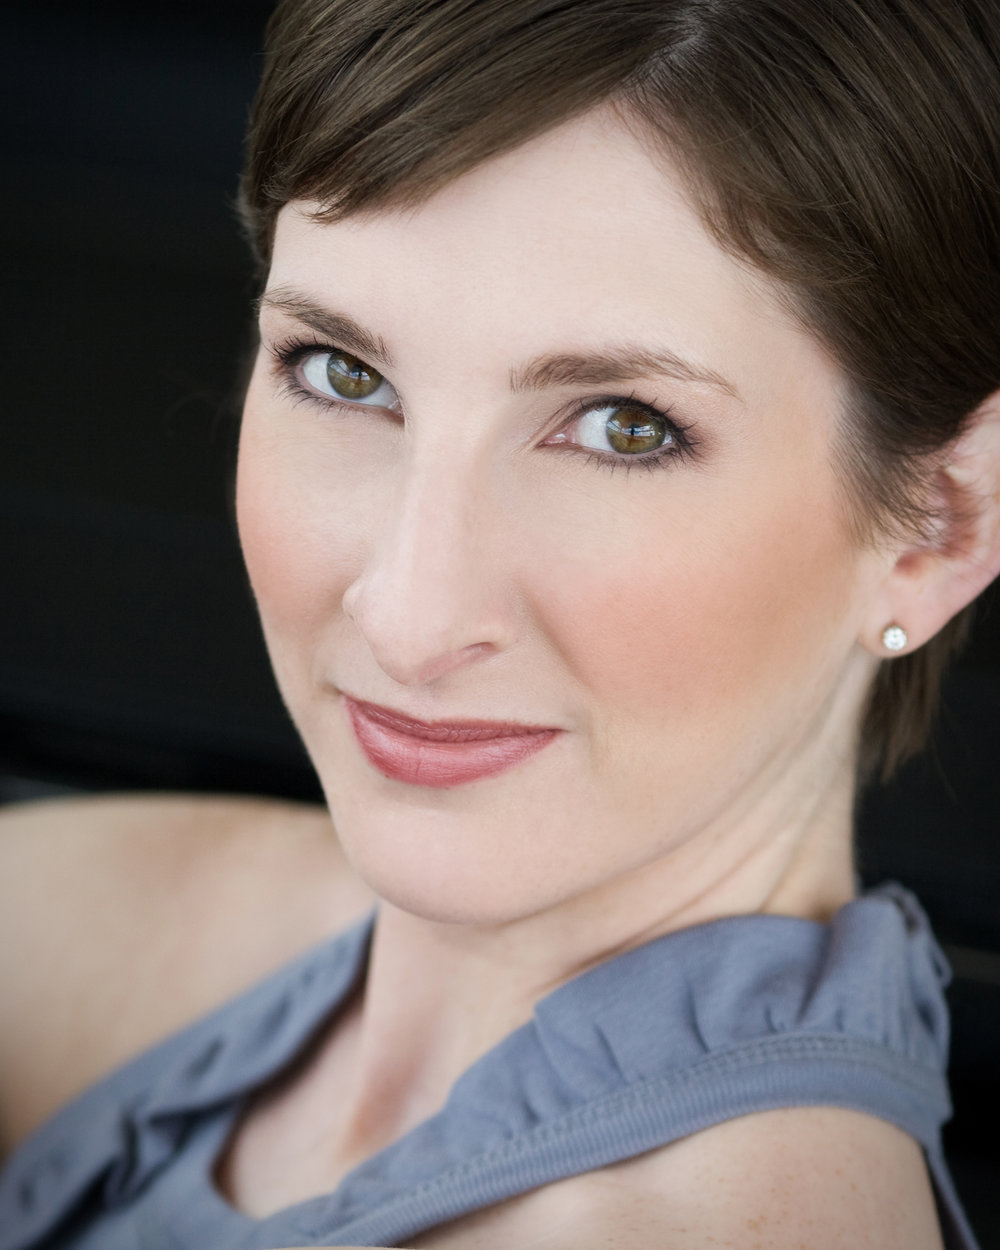 """AMY RUTH (Ensemble)  is thrilled to join the cast of  On The Town ! She is a graduate of Southern Methodist University with a BFA in dance performance. Local credits include CTM's  Tuck Everlasting  (ensemble), MPT's  42nd Street  (""""Anytime"""" Annie Reilly) and  A Chorus Line  (Cassie), as well as FST's  Spamalot  (Laker Girl). Regional: Casa Mañana's  Carousel  and  The King and I  (Ensemble). Amy is also a former Radio City Rockette. Love and thanks to my family, and to James for your undying support."""